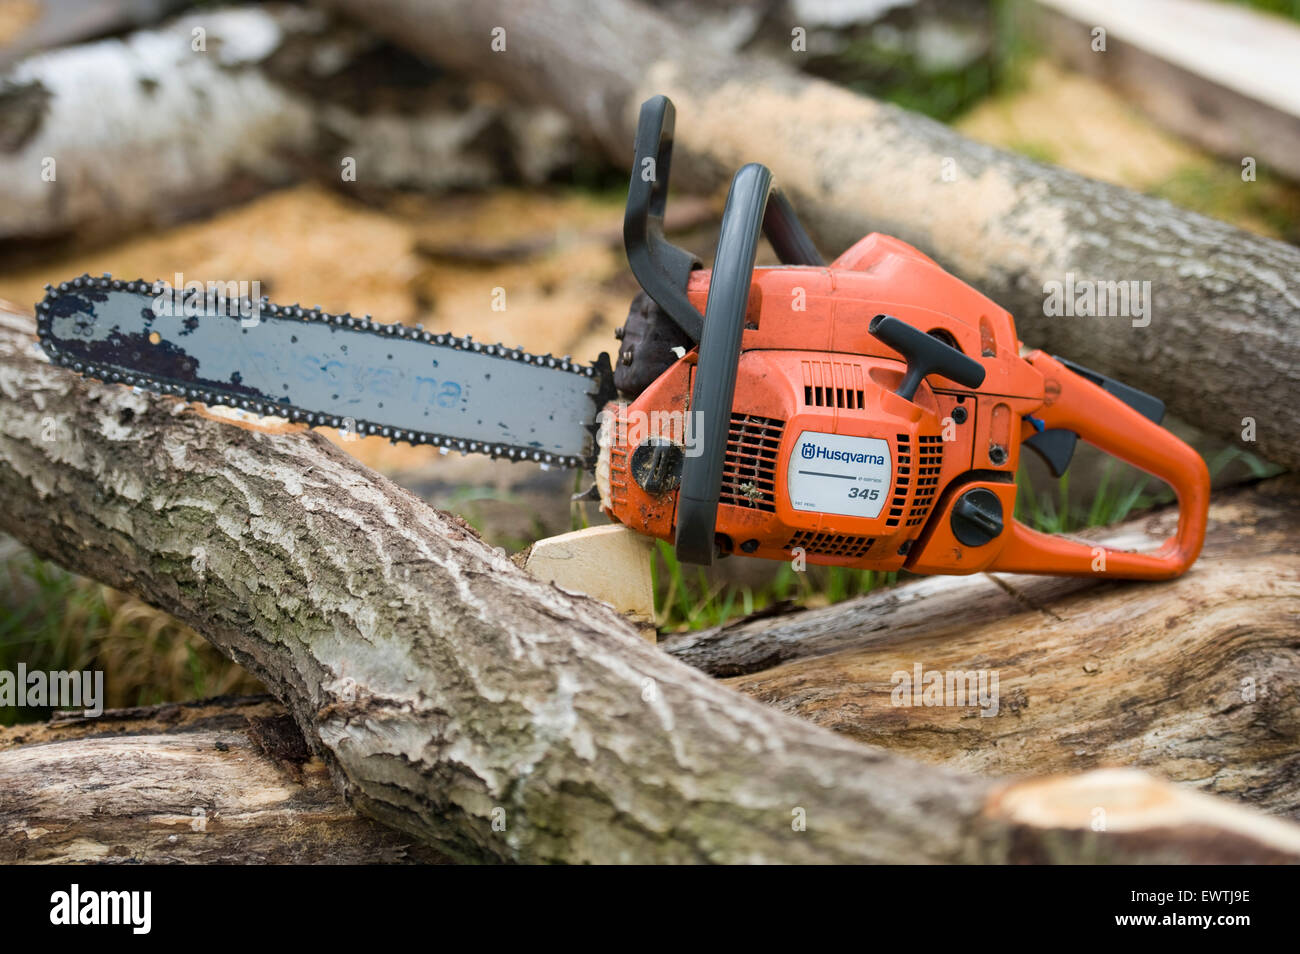 Used Husqvarna 345 chainsaw set down on a pile of cut logs after felling and cutting trees. Photography by Becky - Stock Image